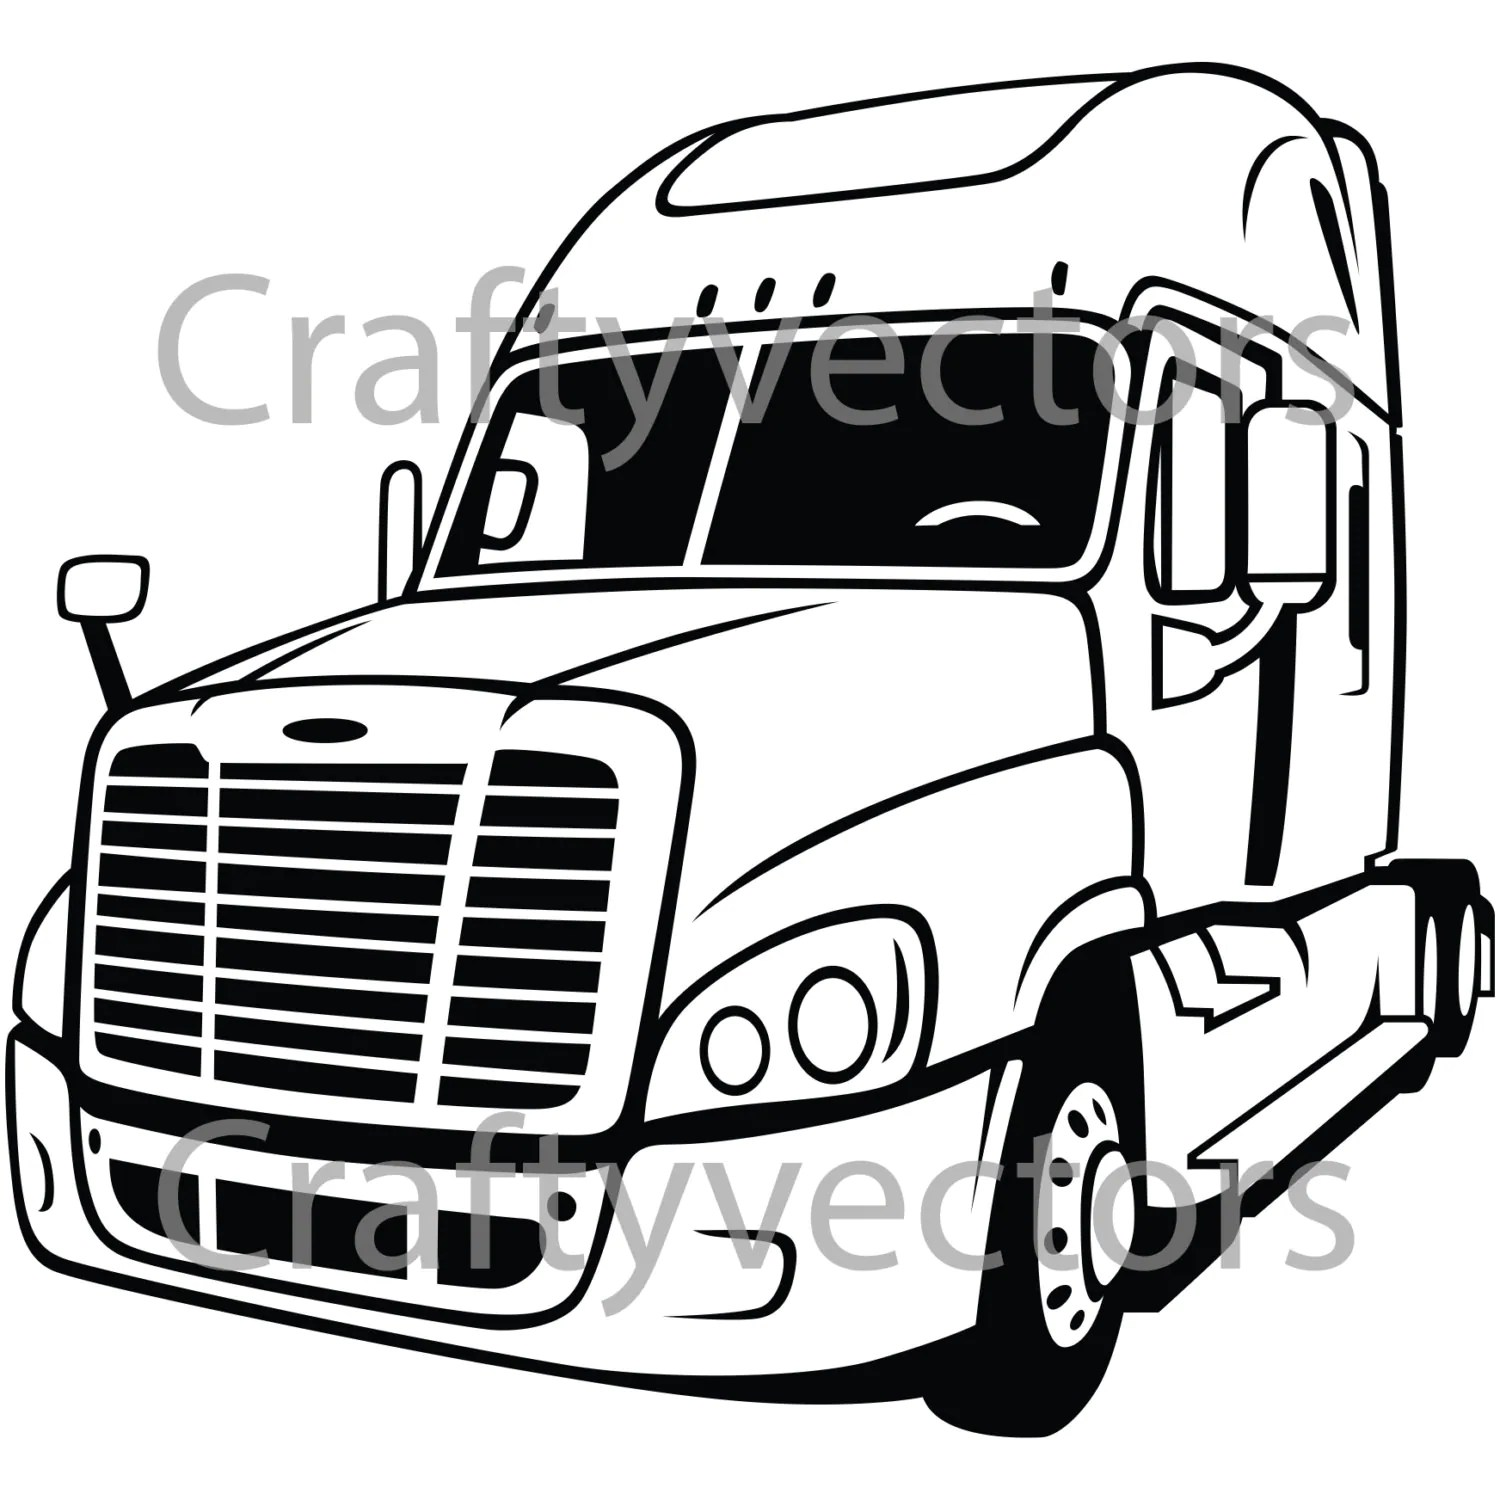 Freightliner Cascadia Rig Vector File From Craftyvectors